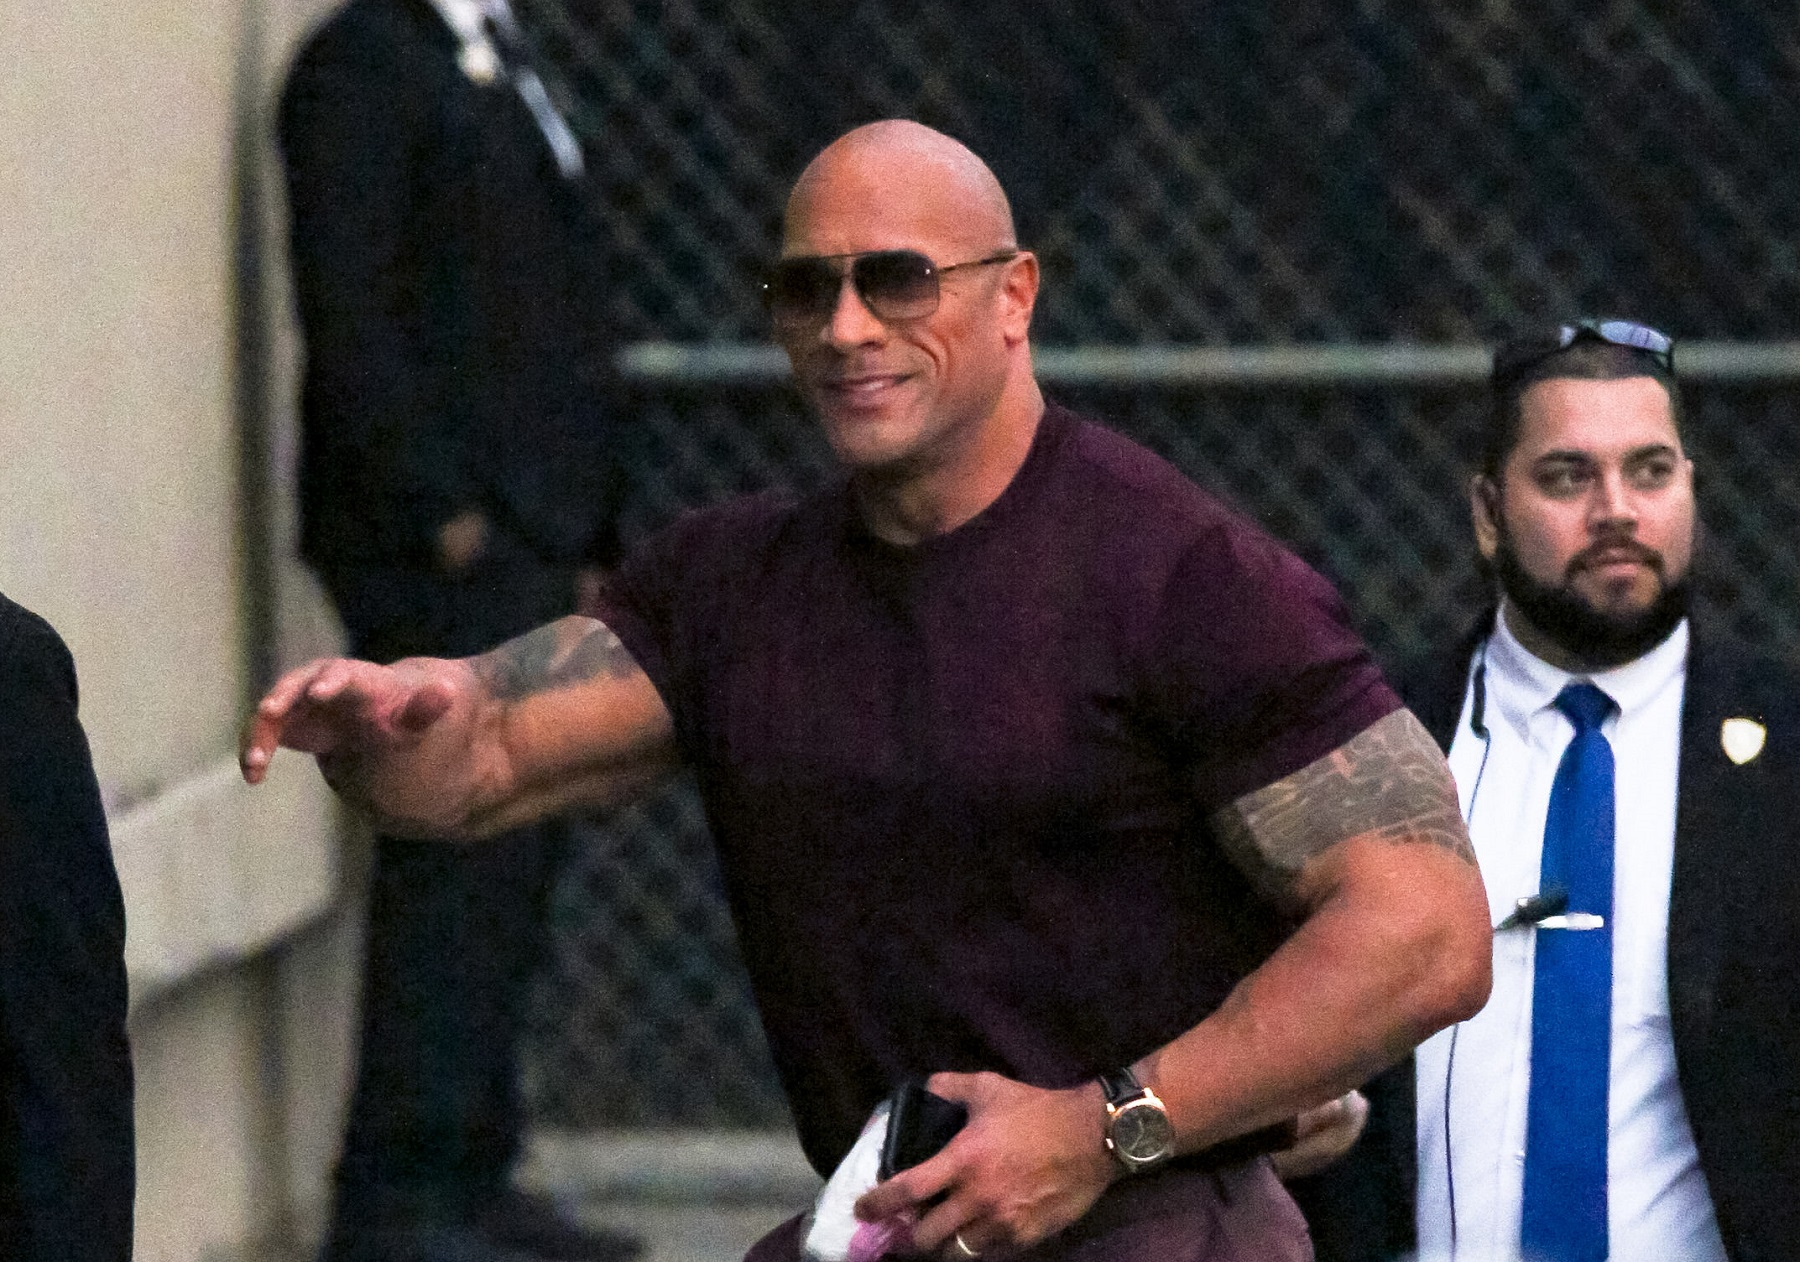 Dwayne Johnson Gave a Former WWE Star an Awesome Christmas Gift